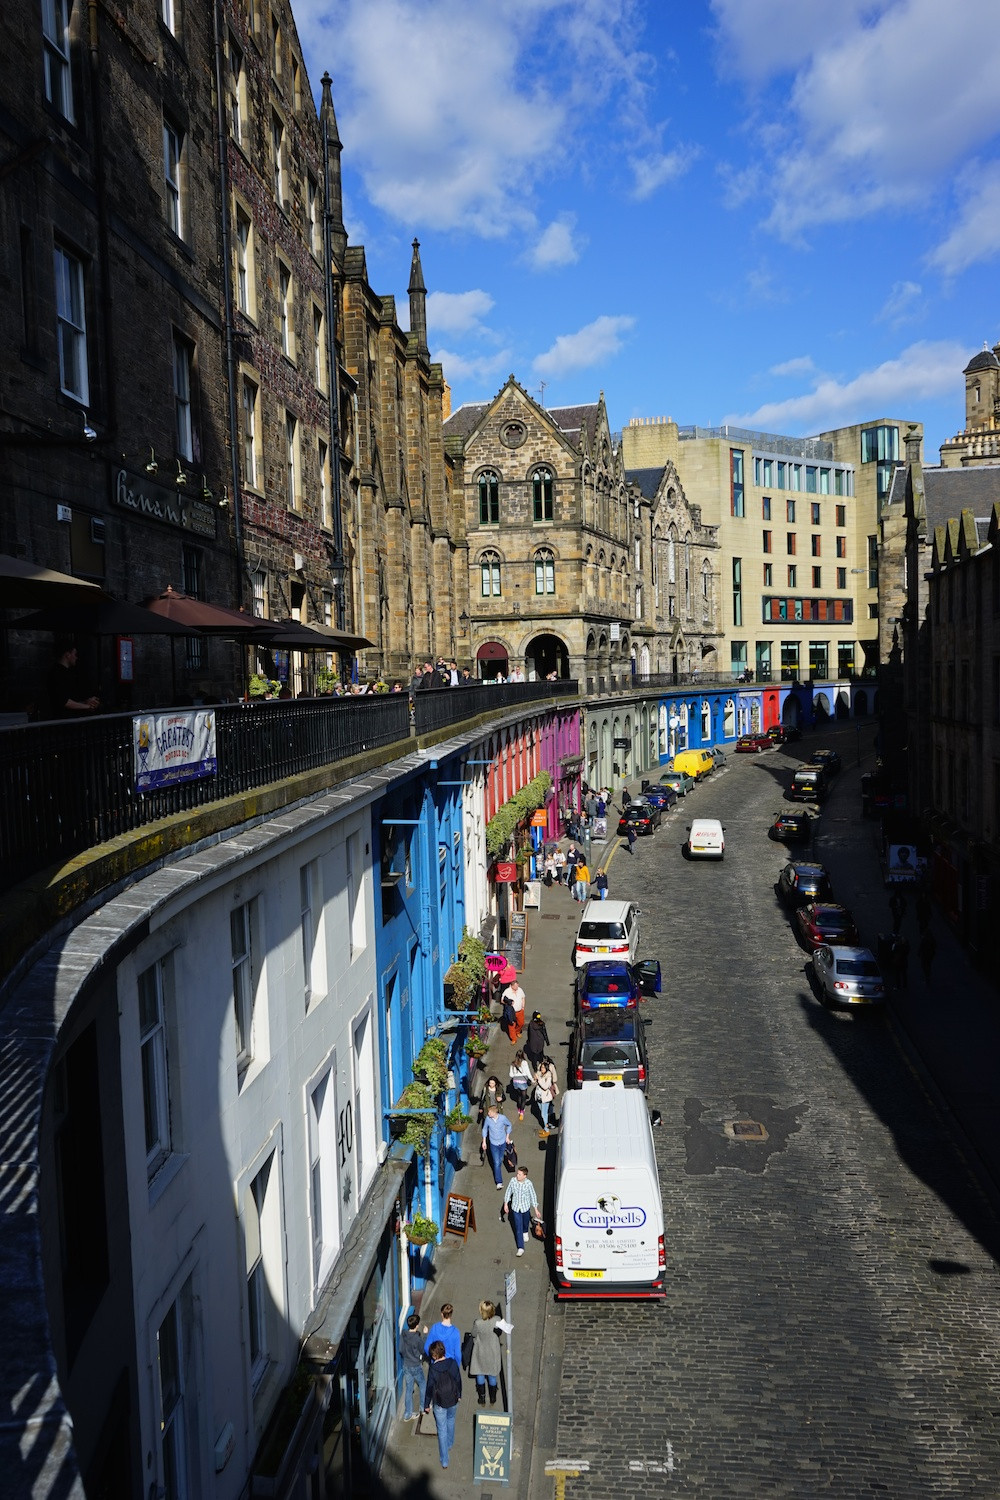 Victoria Street as seen from Victoria Terrace.